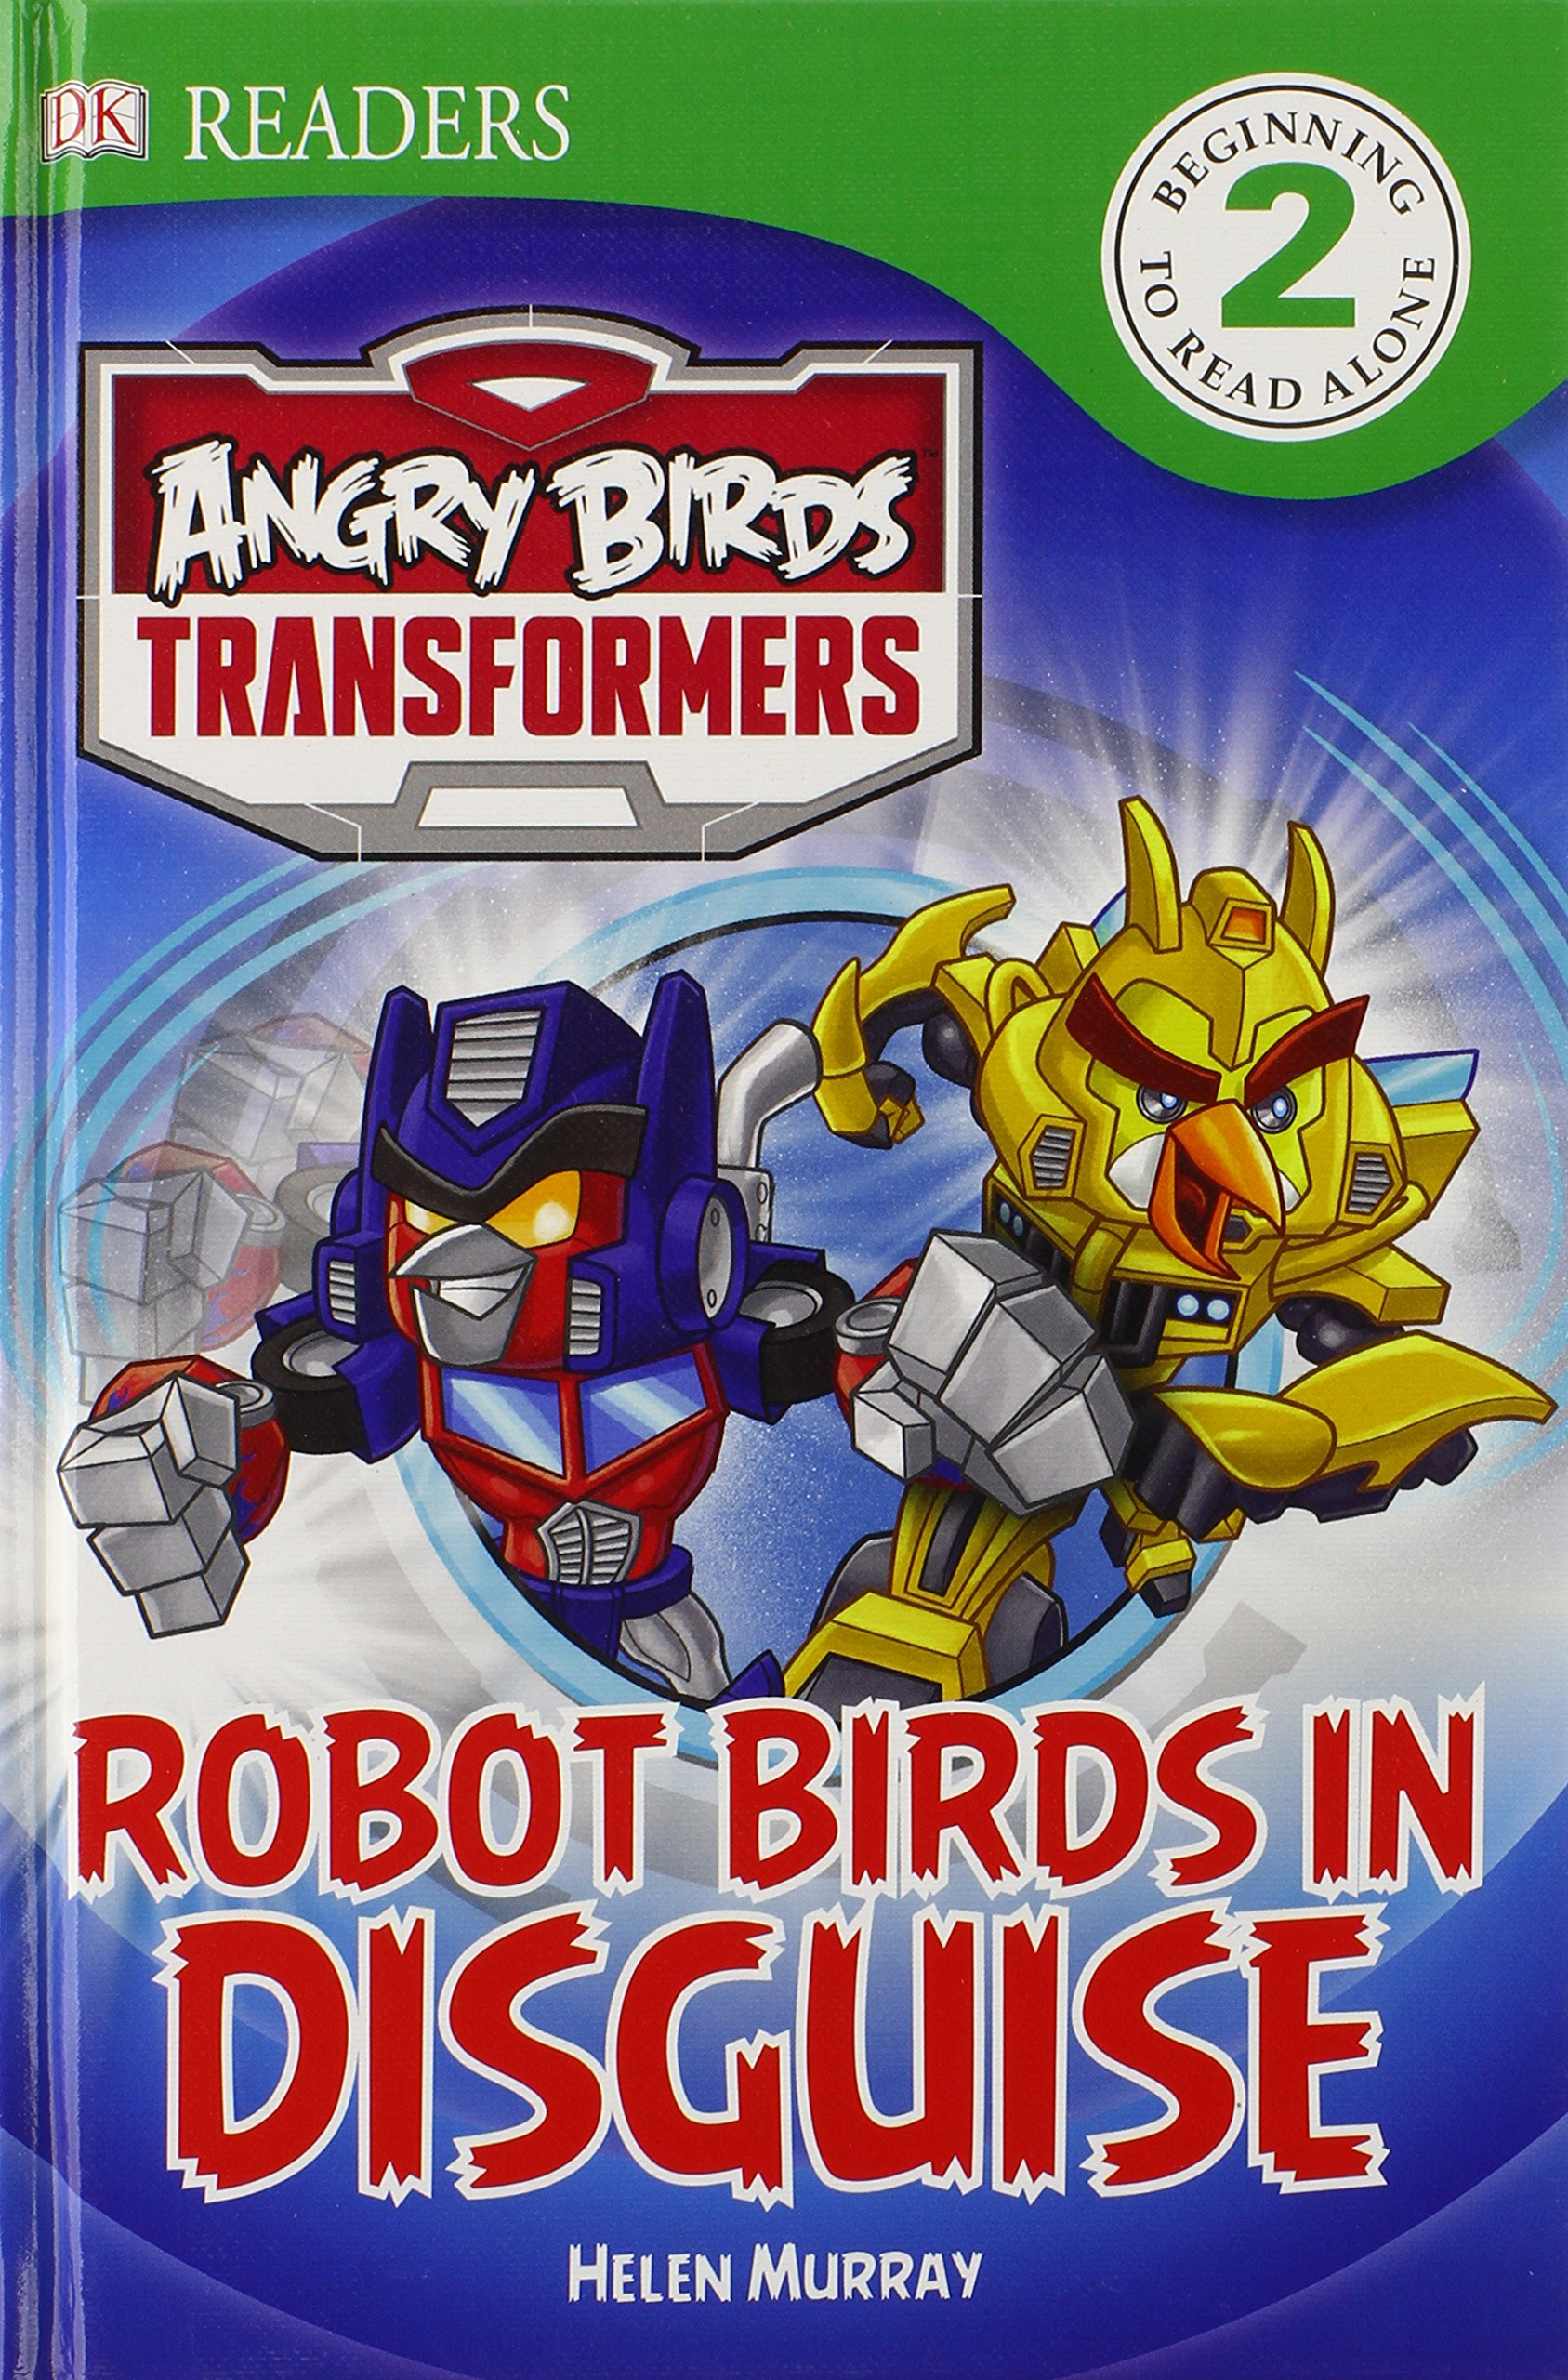 Read Online DK Readers L2: Angry Birds Transformers: Robot Birds in Disguise pdf epub